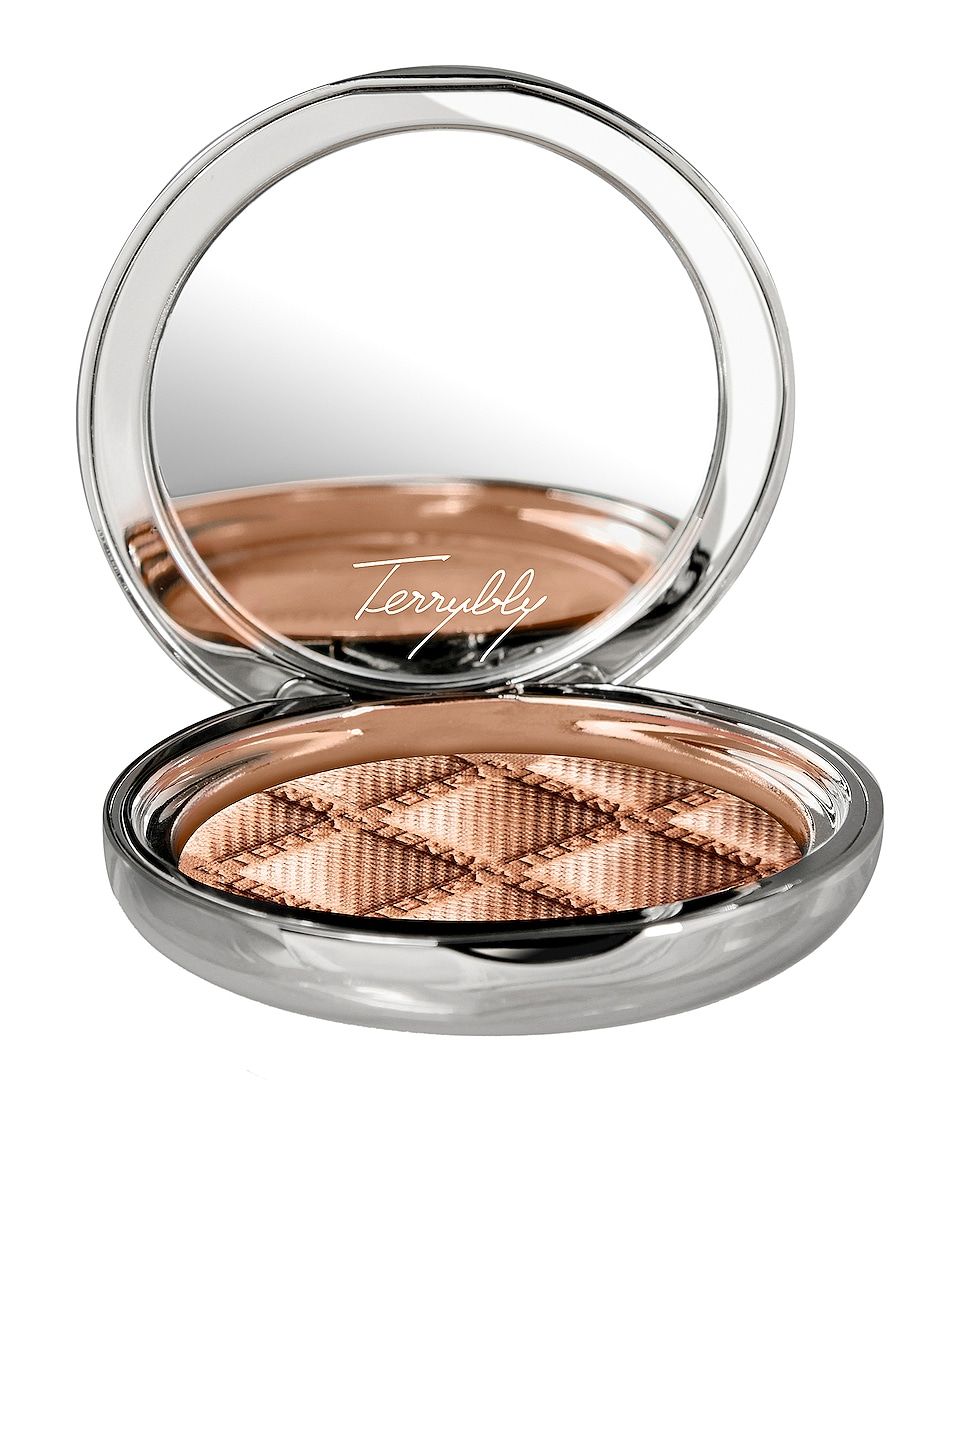 By Terry Terrybly Densiliss Compact Powder in Melody Fair